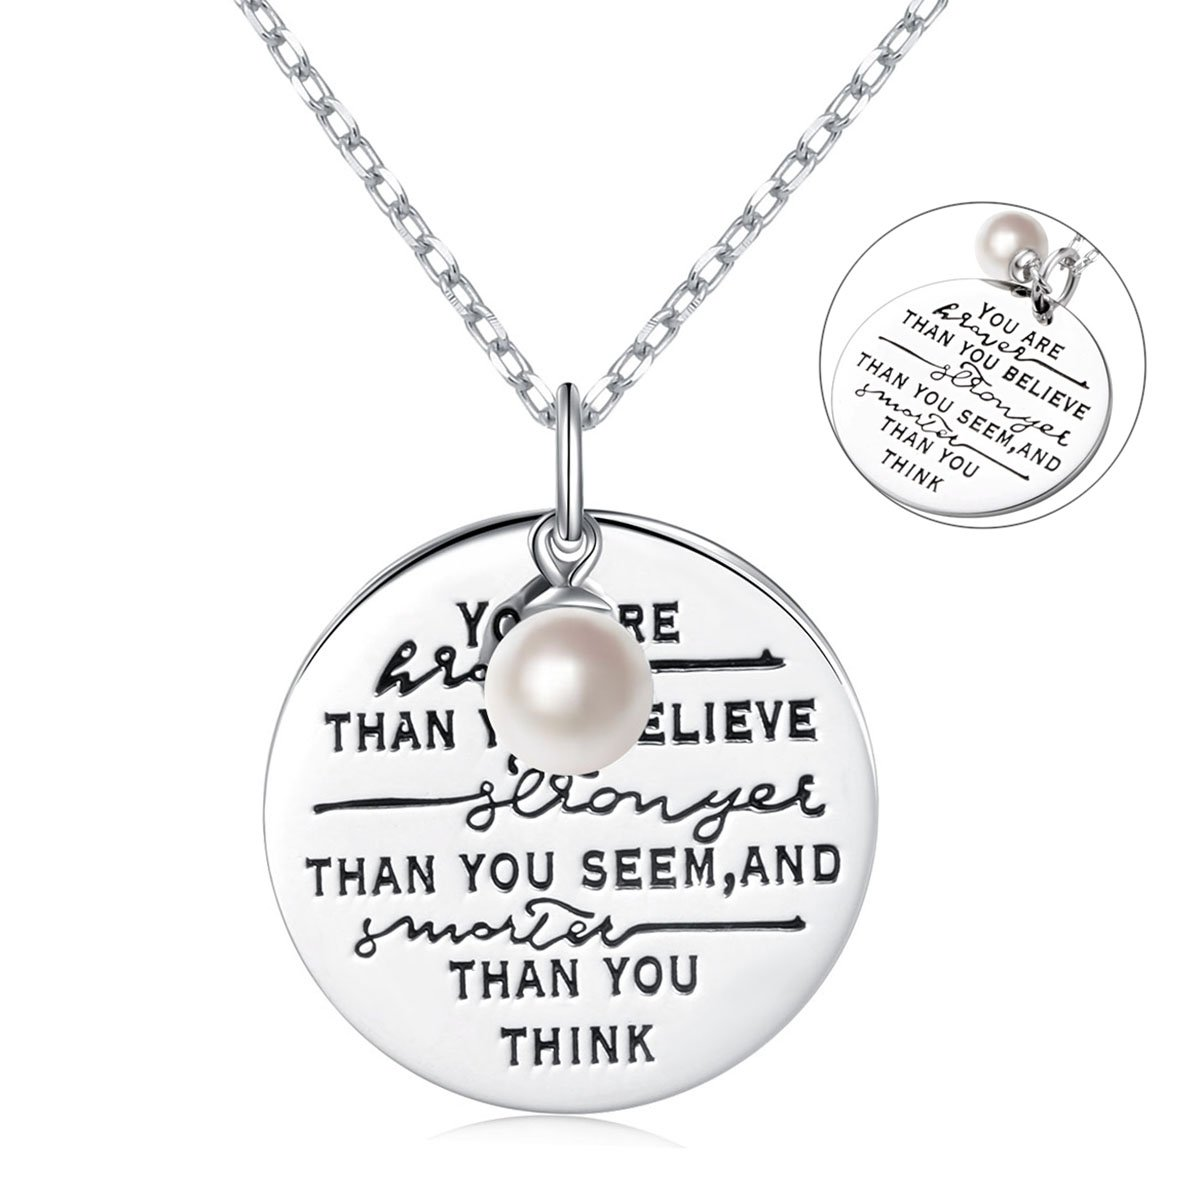 LINLIN FINE JEWELRY 925 Sterling Silver Cultured Pearl Encourage Engraved Insipratinal Disc Necklace Gift for Women Girls,18'' (You Are Braver Than You Think)